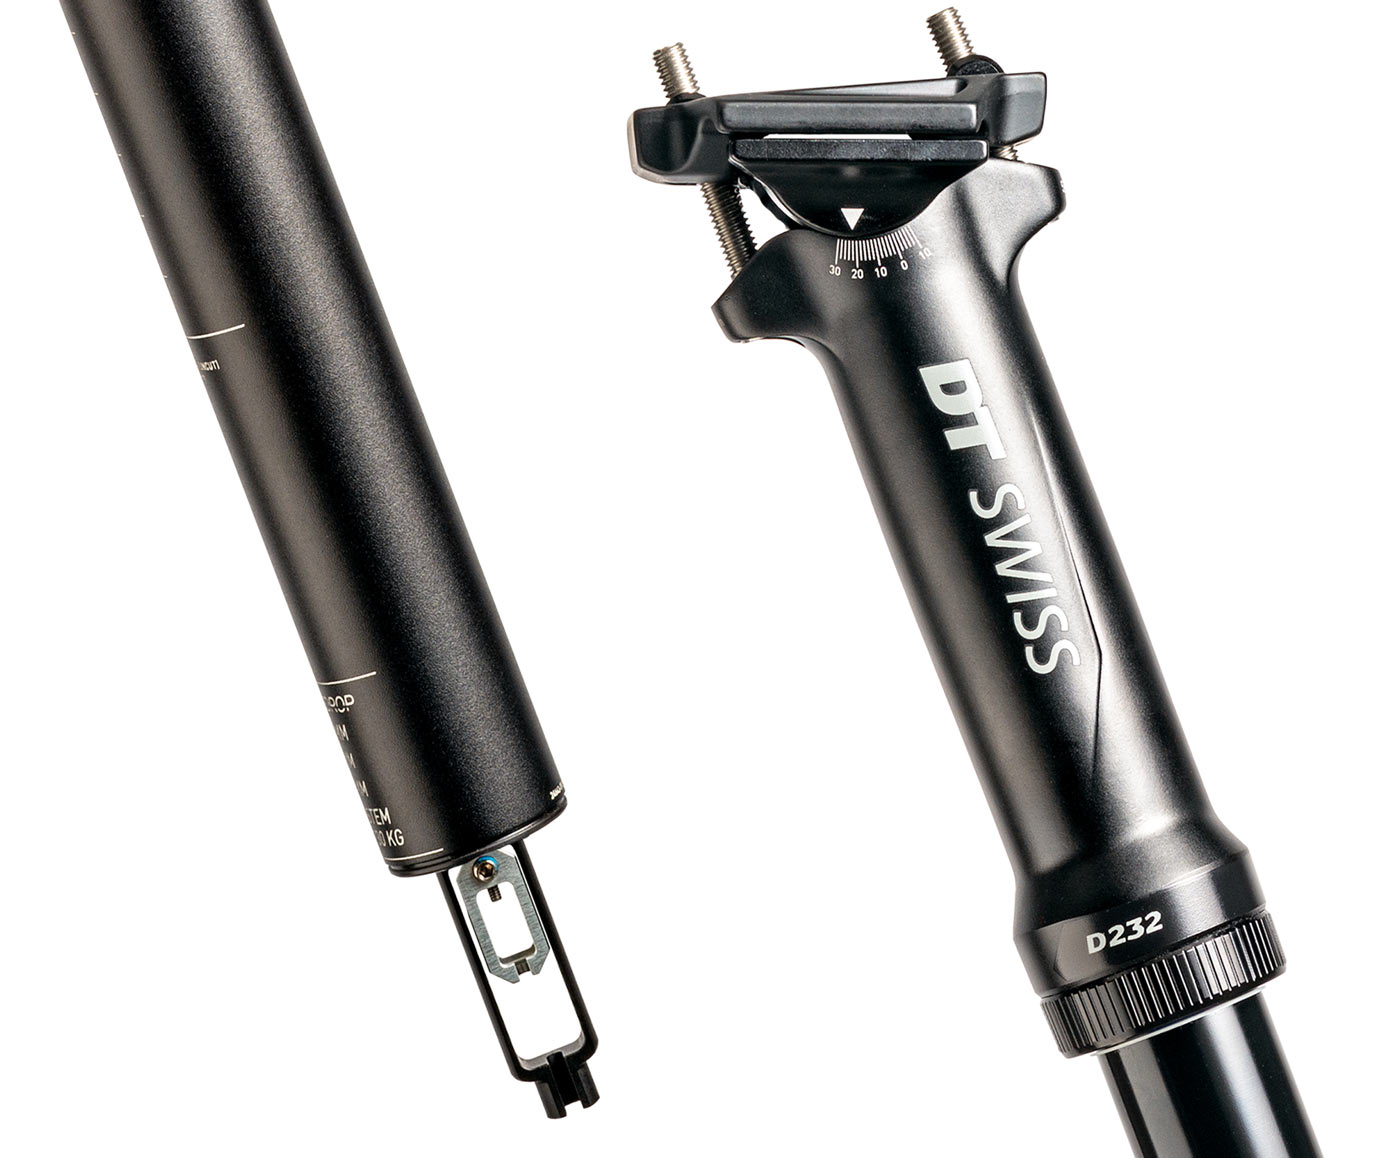 DT Swiss D 232 alloy dropper seatpost with upside down slider and alloy seat tube